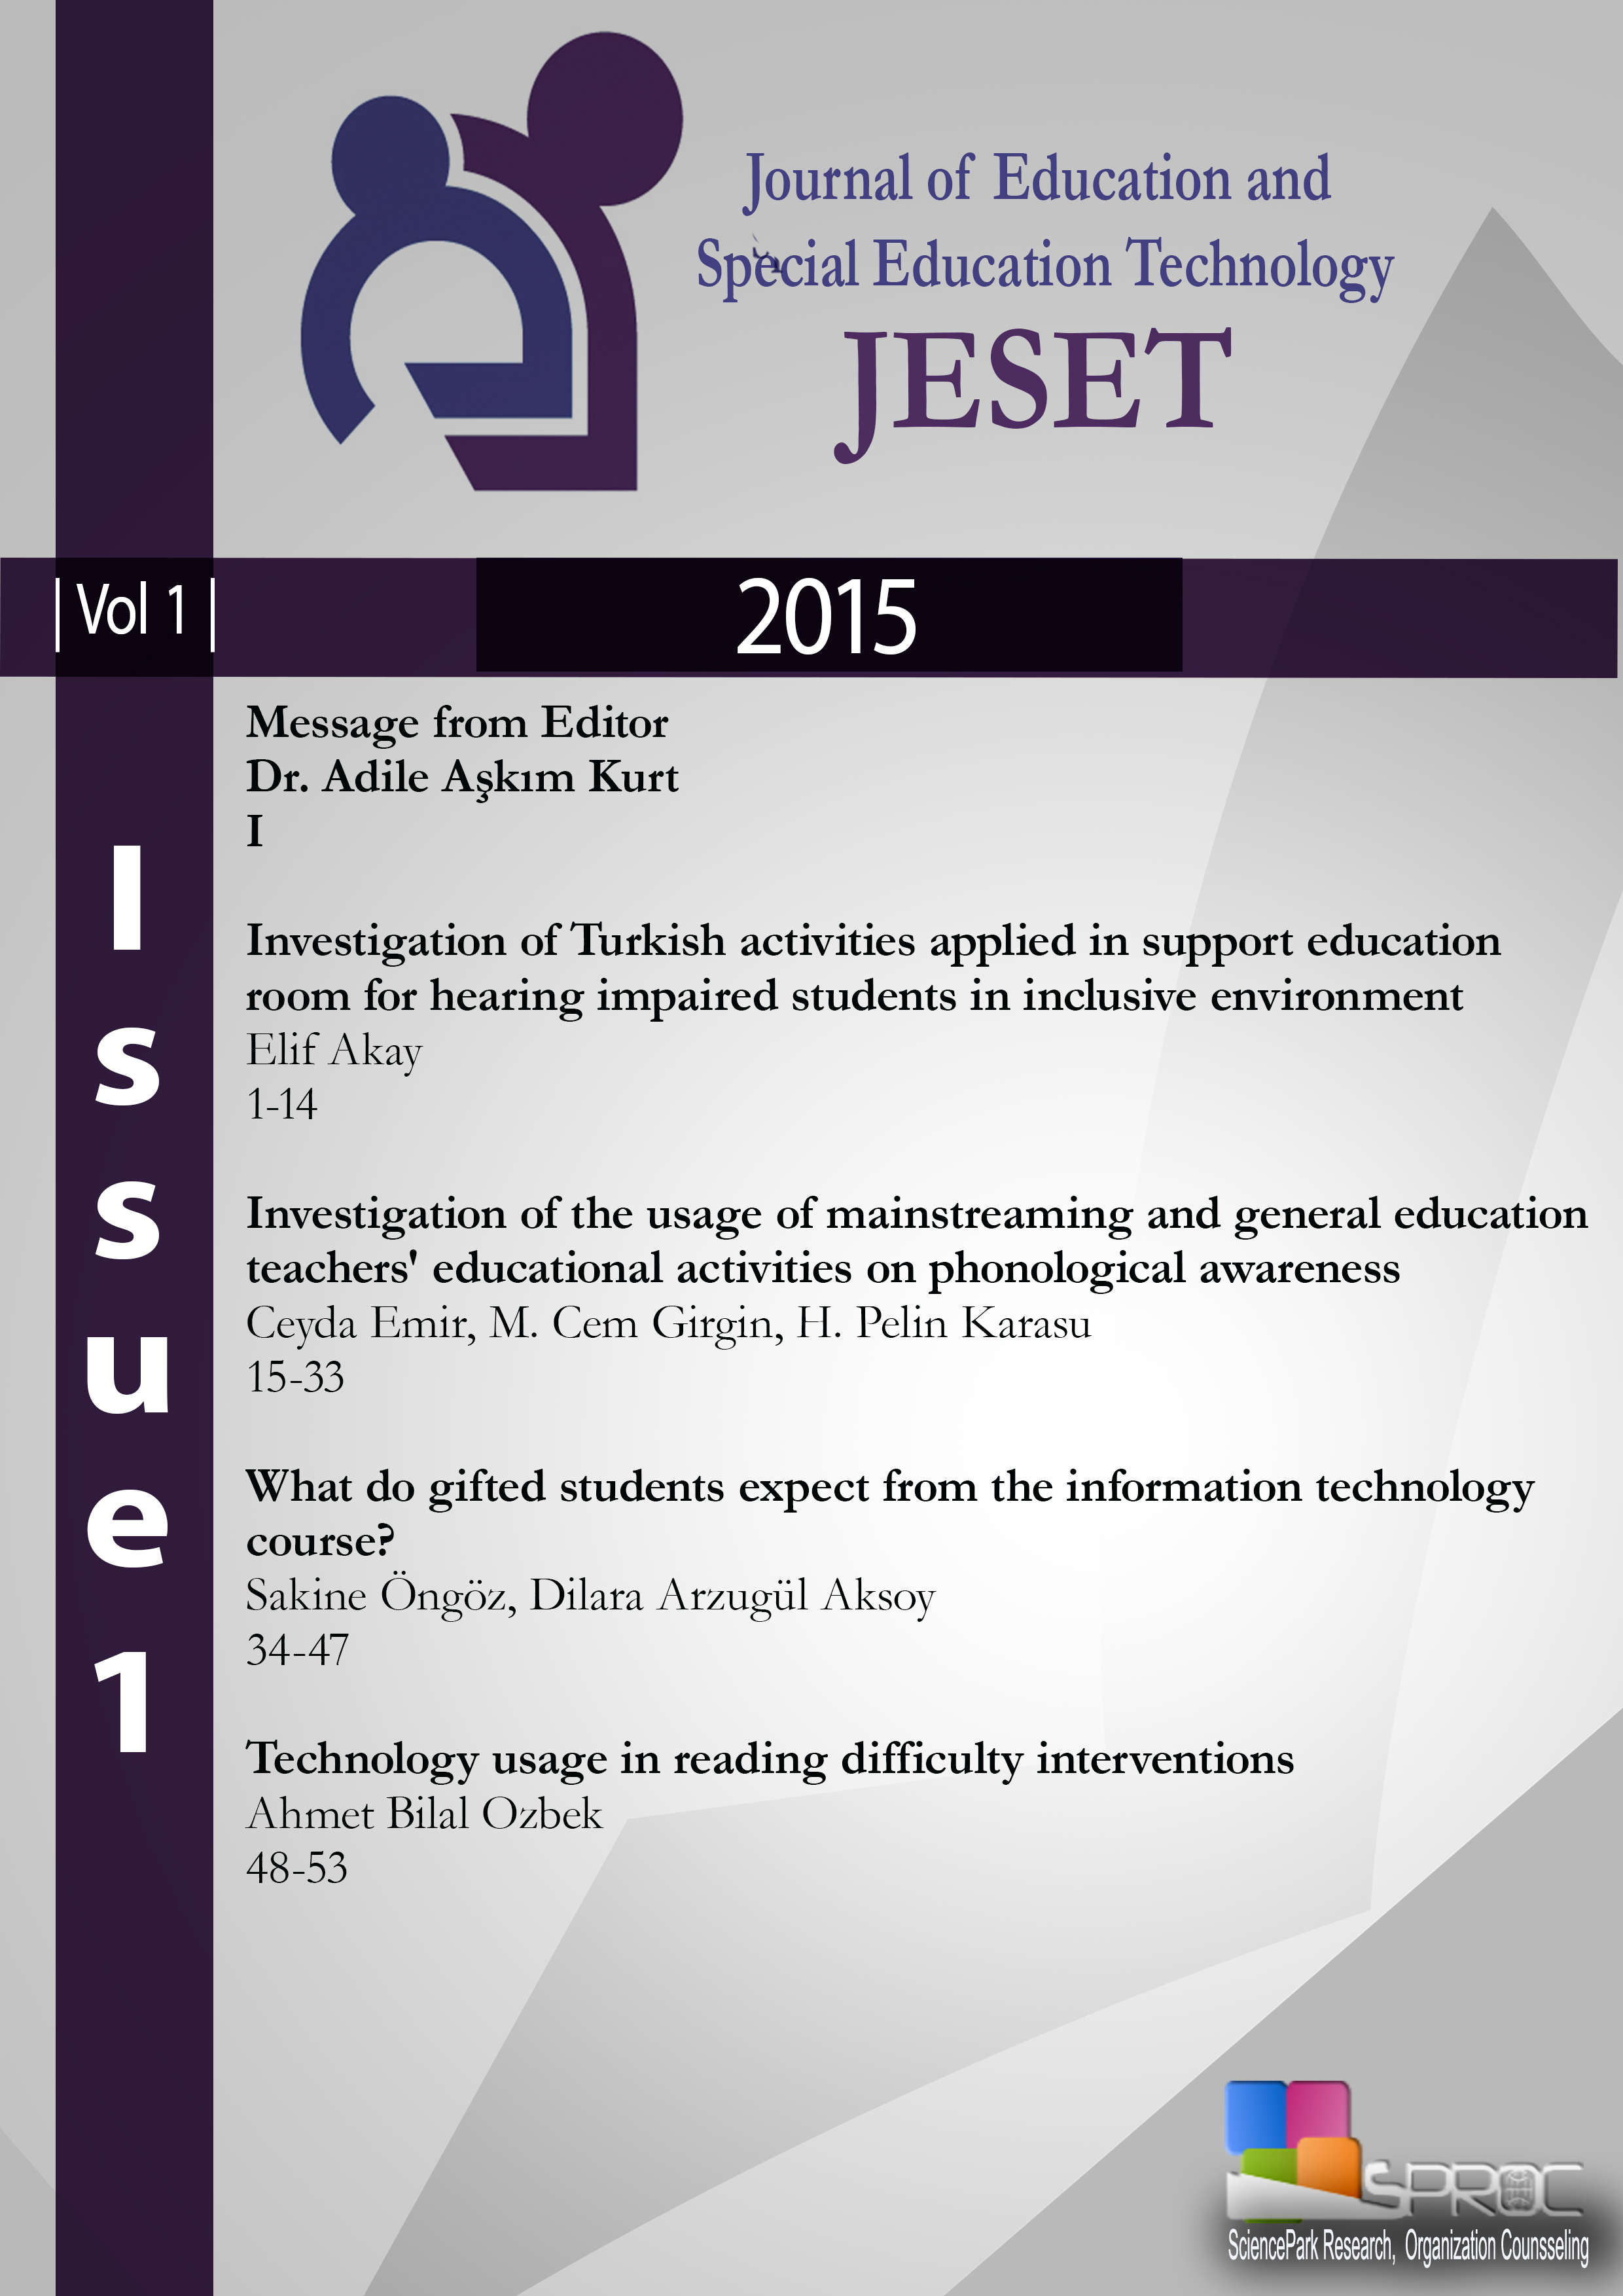 Journal of Education and Special Education Technology-Asos İndeks